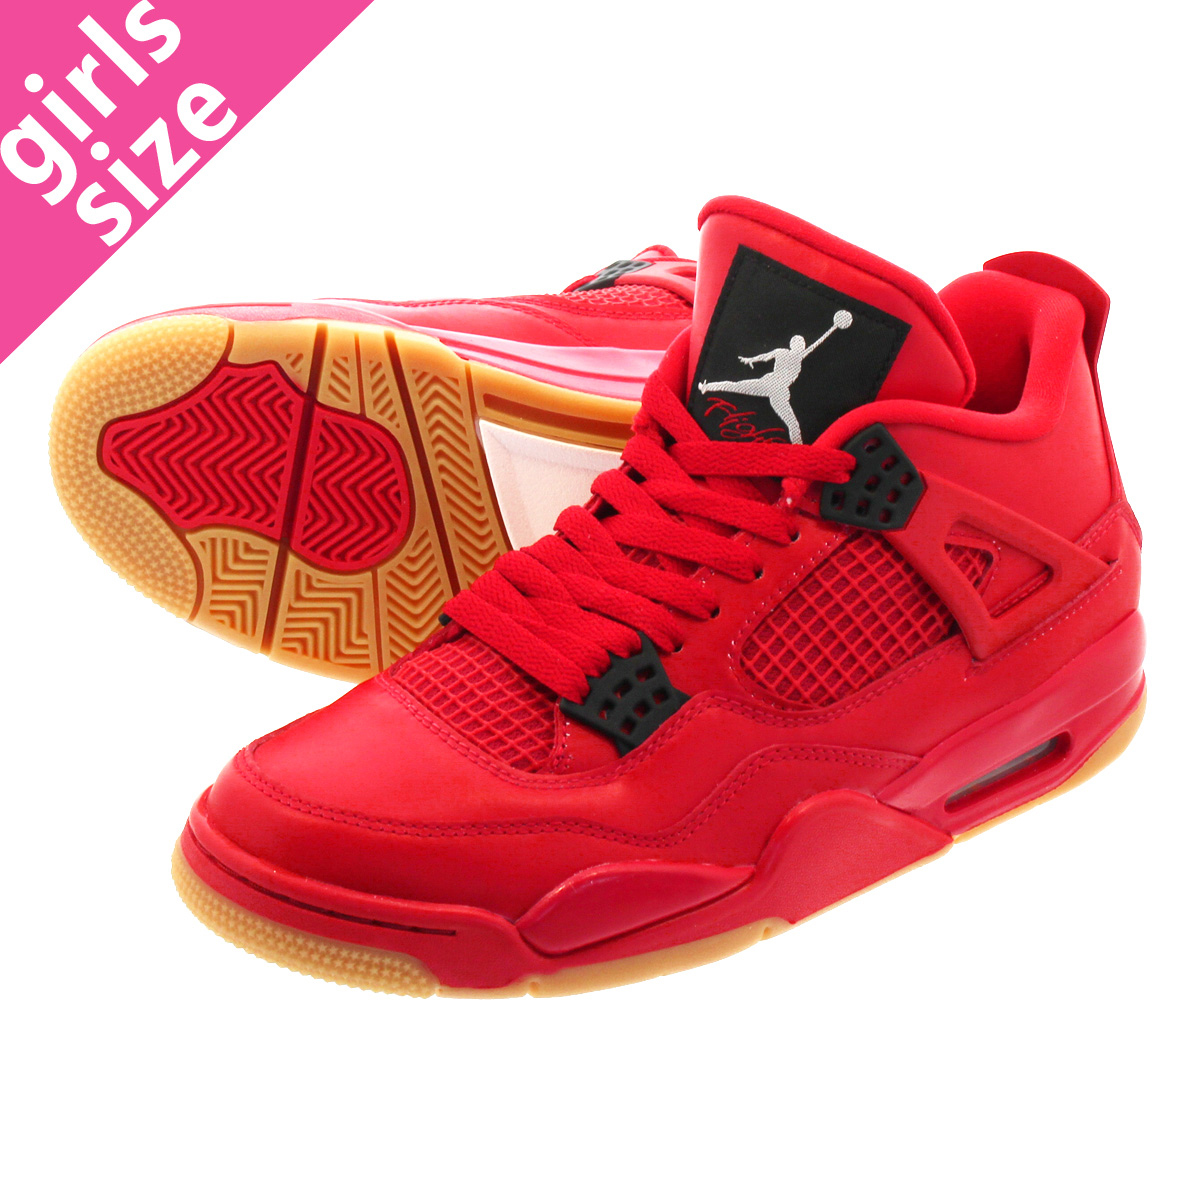 a9e6202fbf4956 LOWTEX PLUS  NIKE WMNS AIR JORDAN 4 RETRO NRG FIRE RED SUMMIT WHITE ...